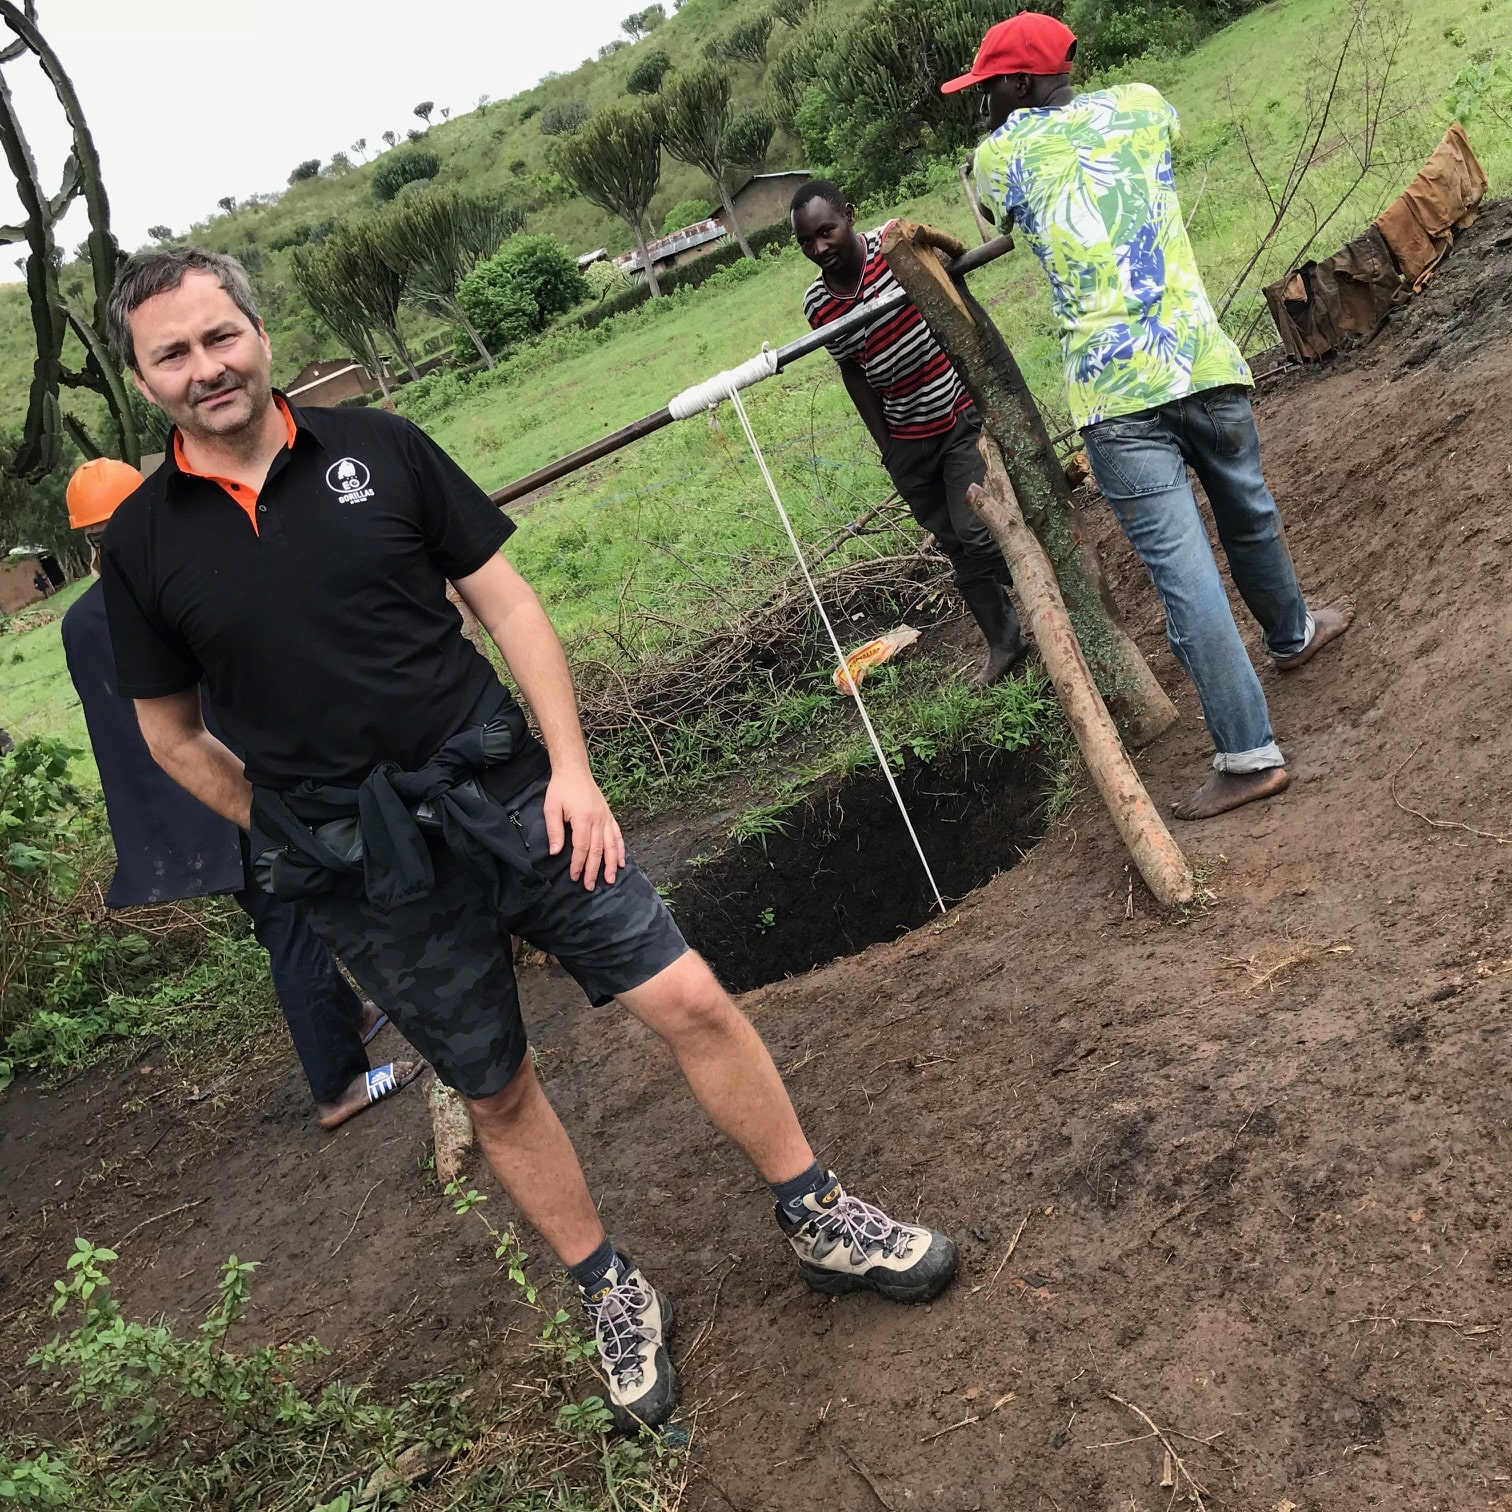 Bedrock Realty owner John Savard is pictured in front of a well being built in Uganda, with community workers behind him